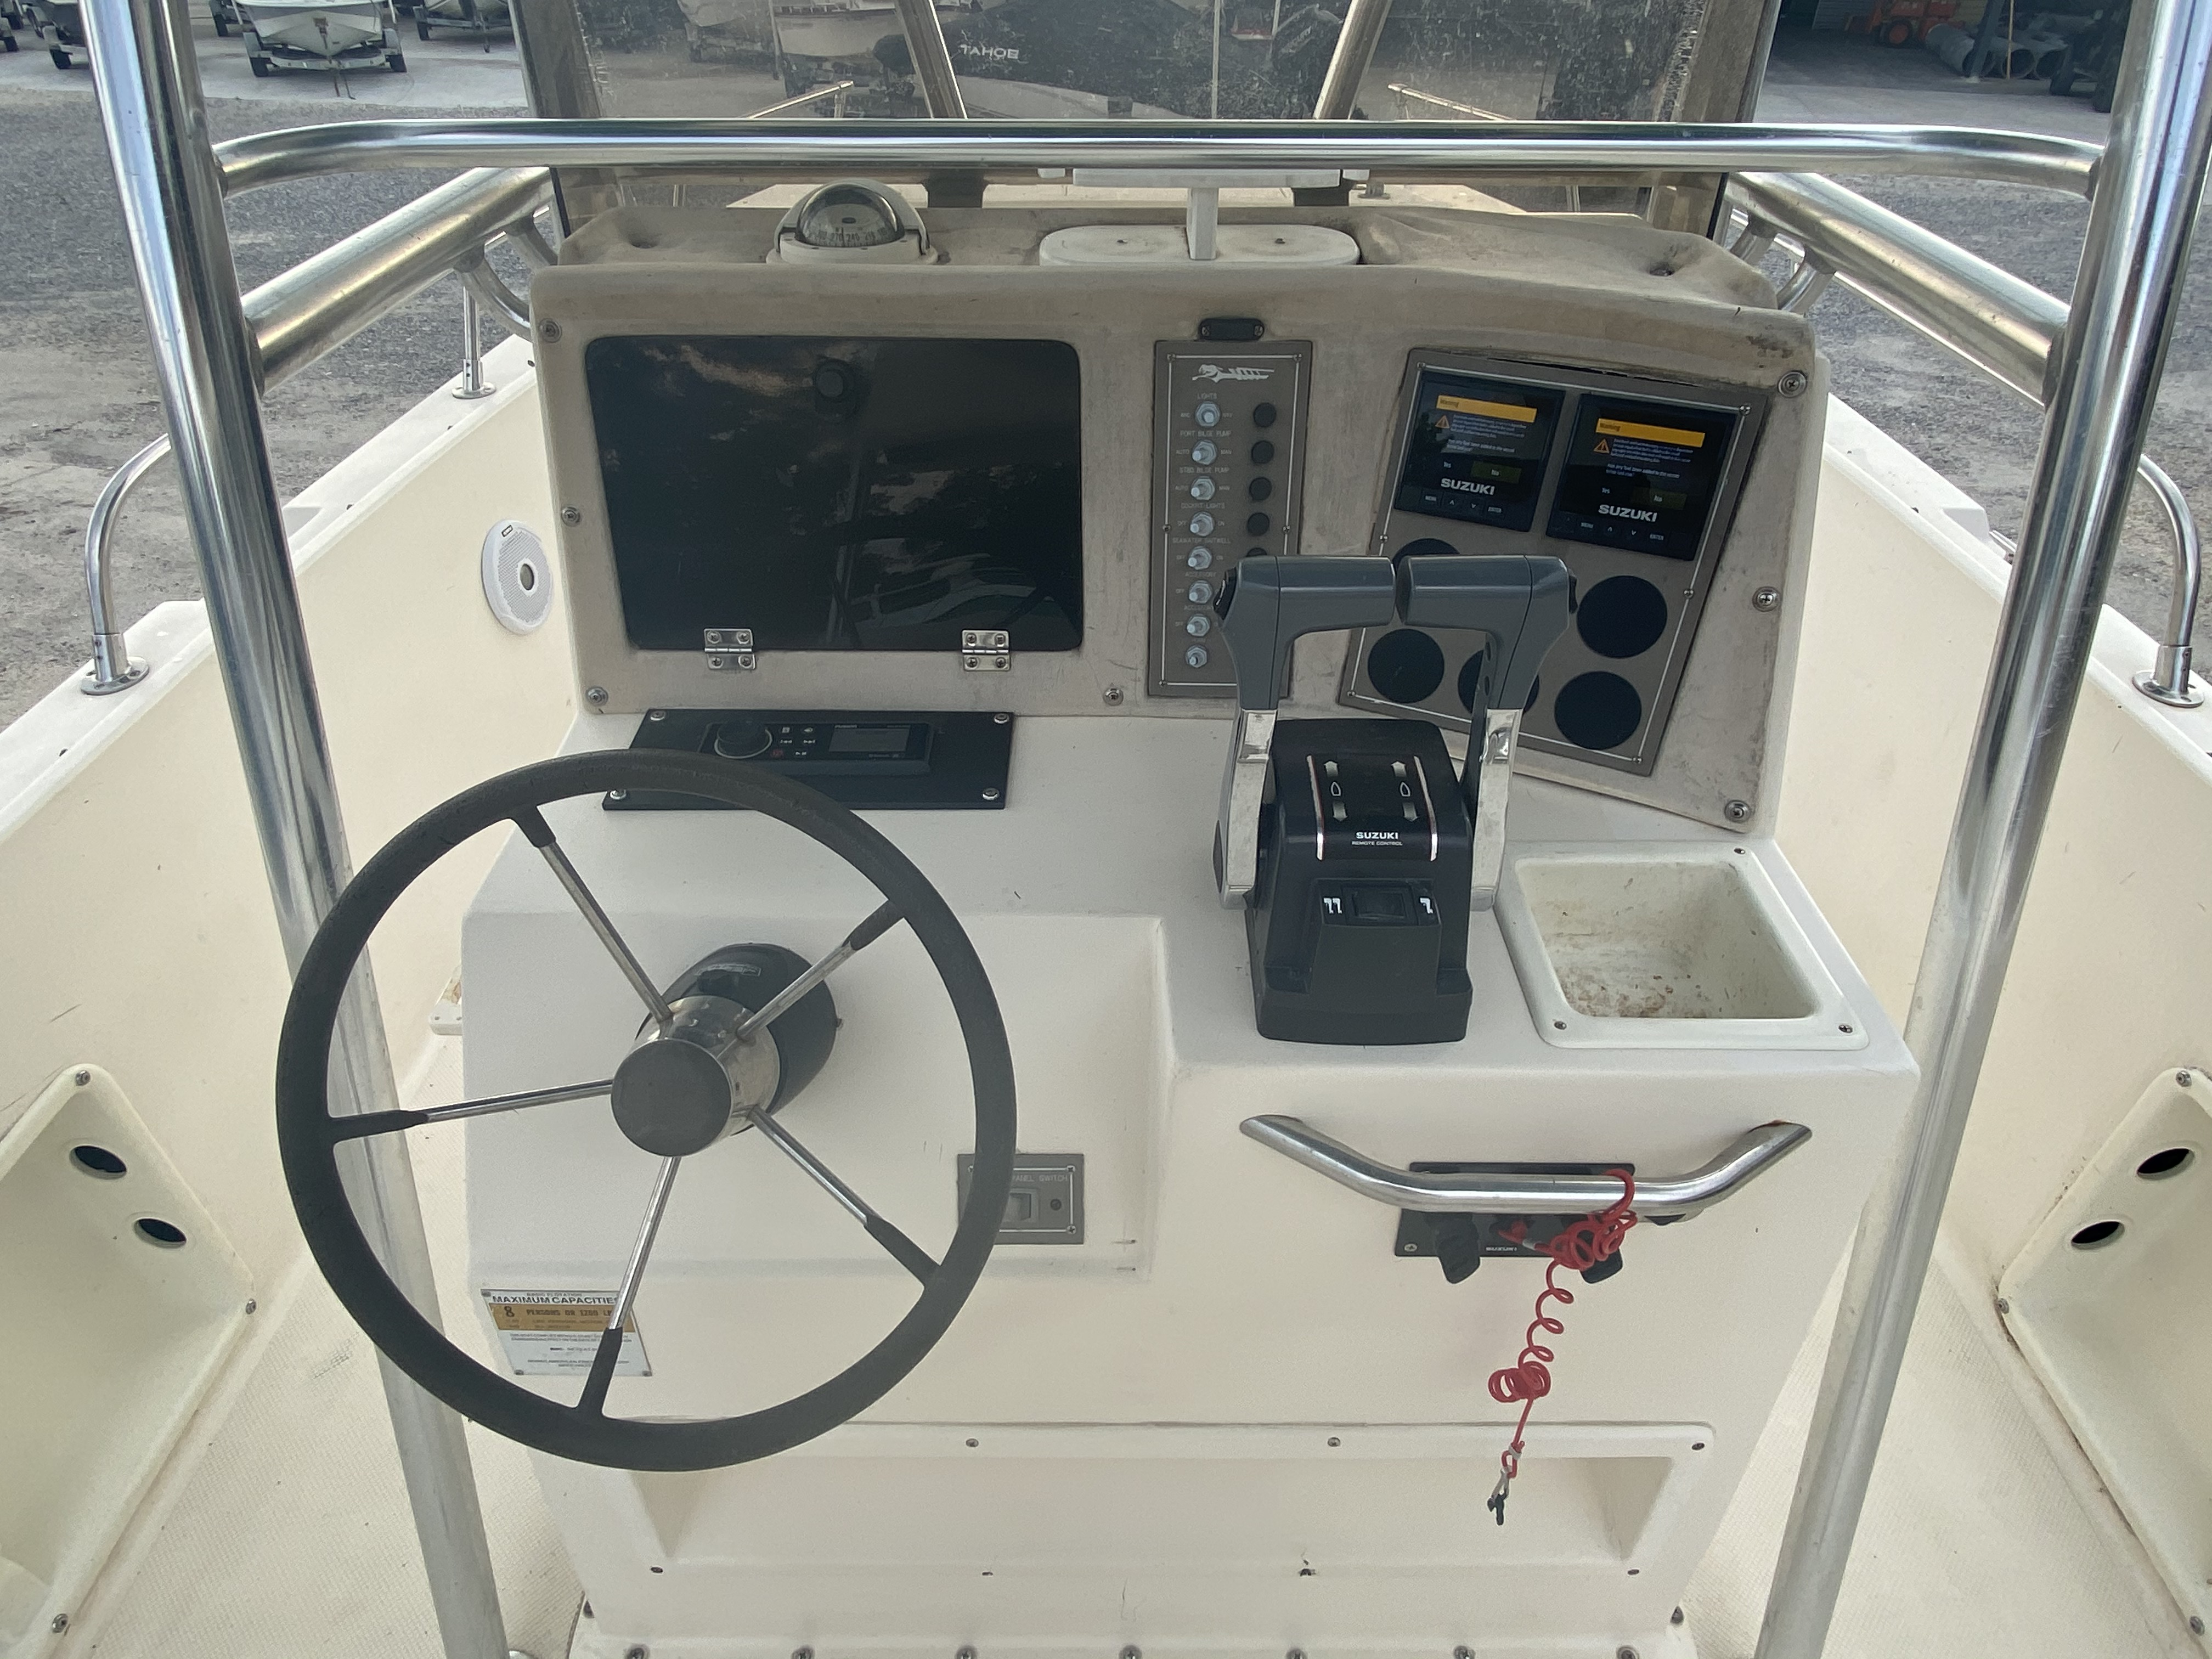 1996 Sea Cat boat for sale, model of the boat is 215 SL1 & Image # 21 of 25